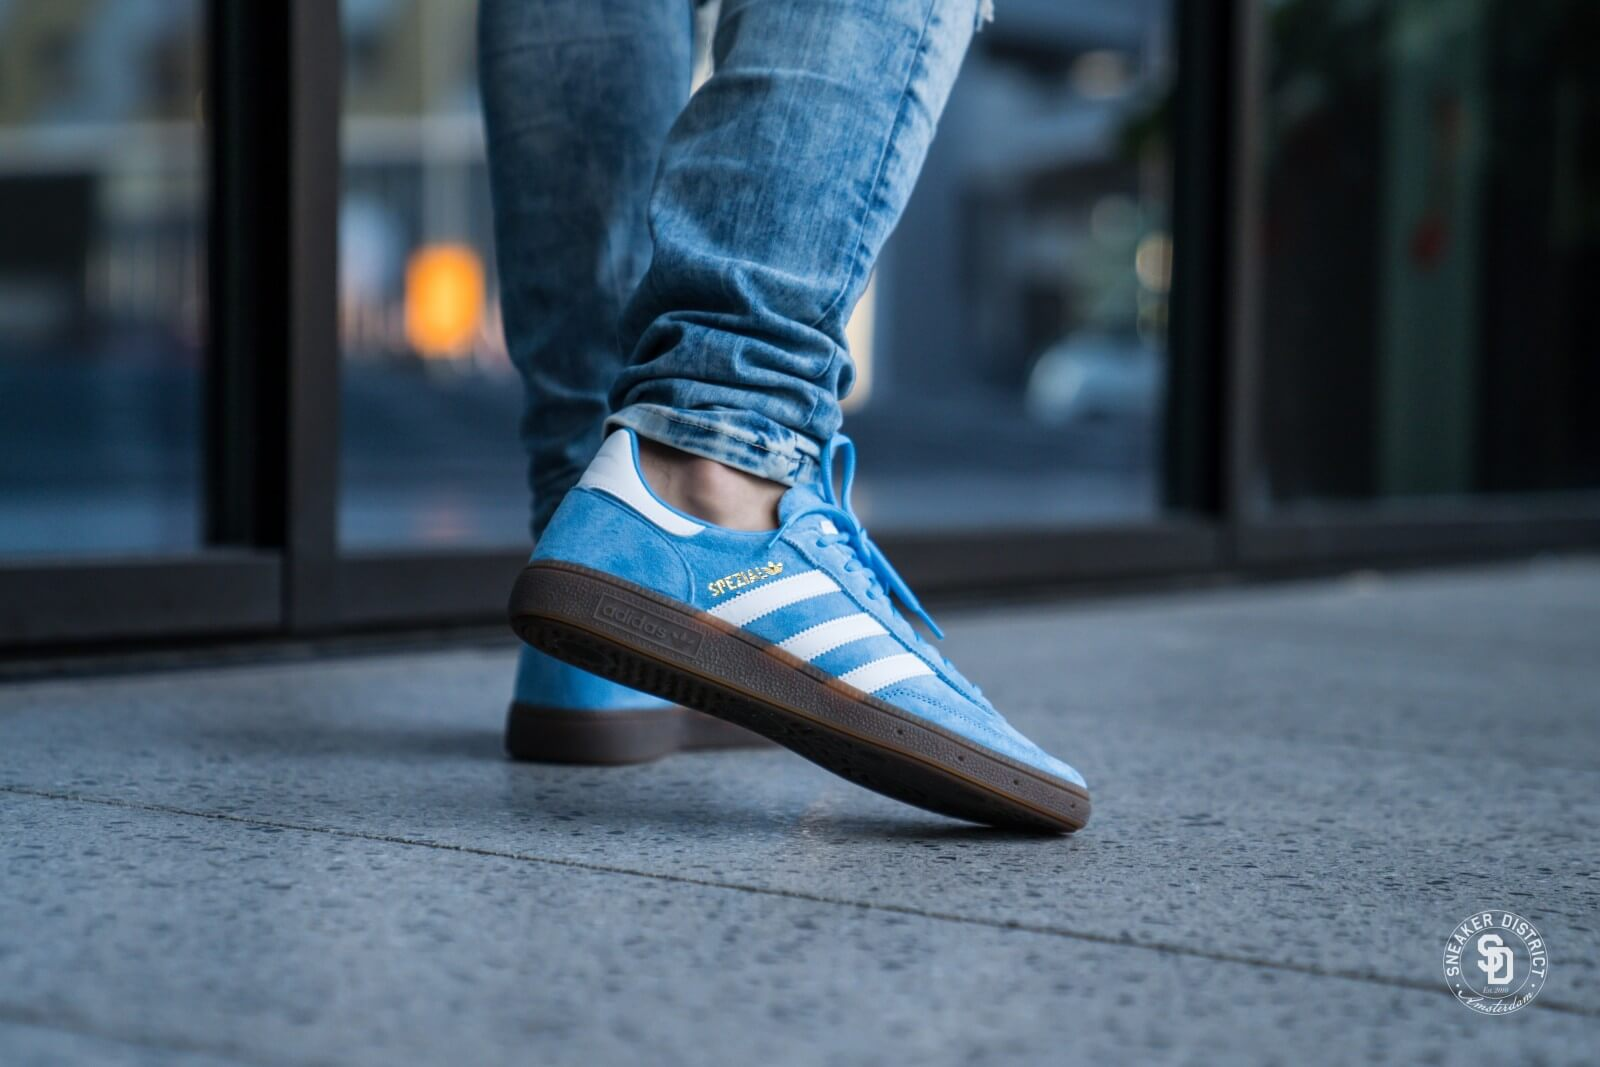 wholesale nice shoes newest collection Adidas Handball Spezial Light Blue/Footwear White/Gum - BD7632